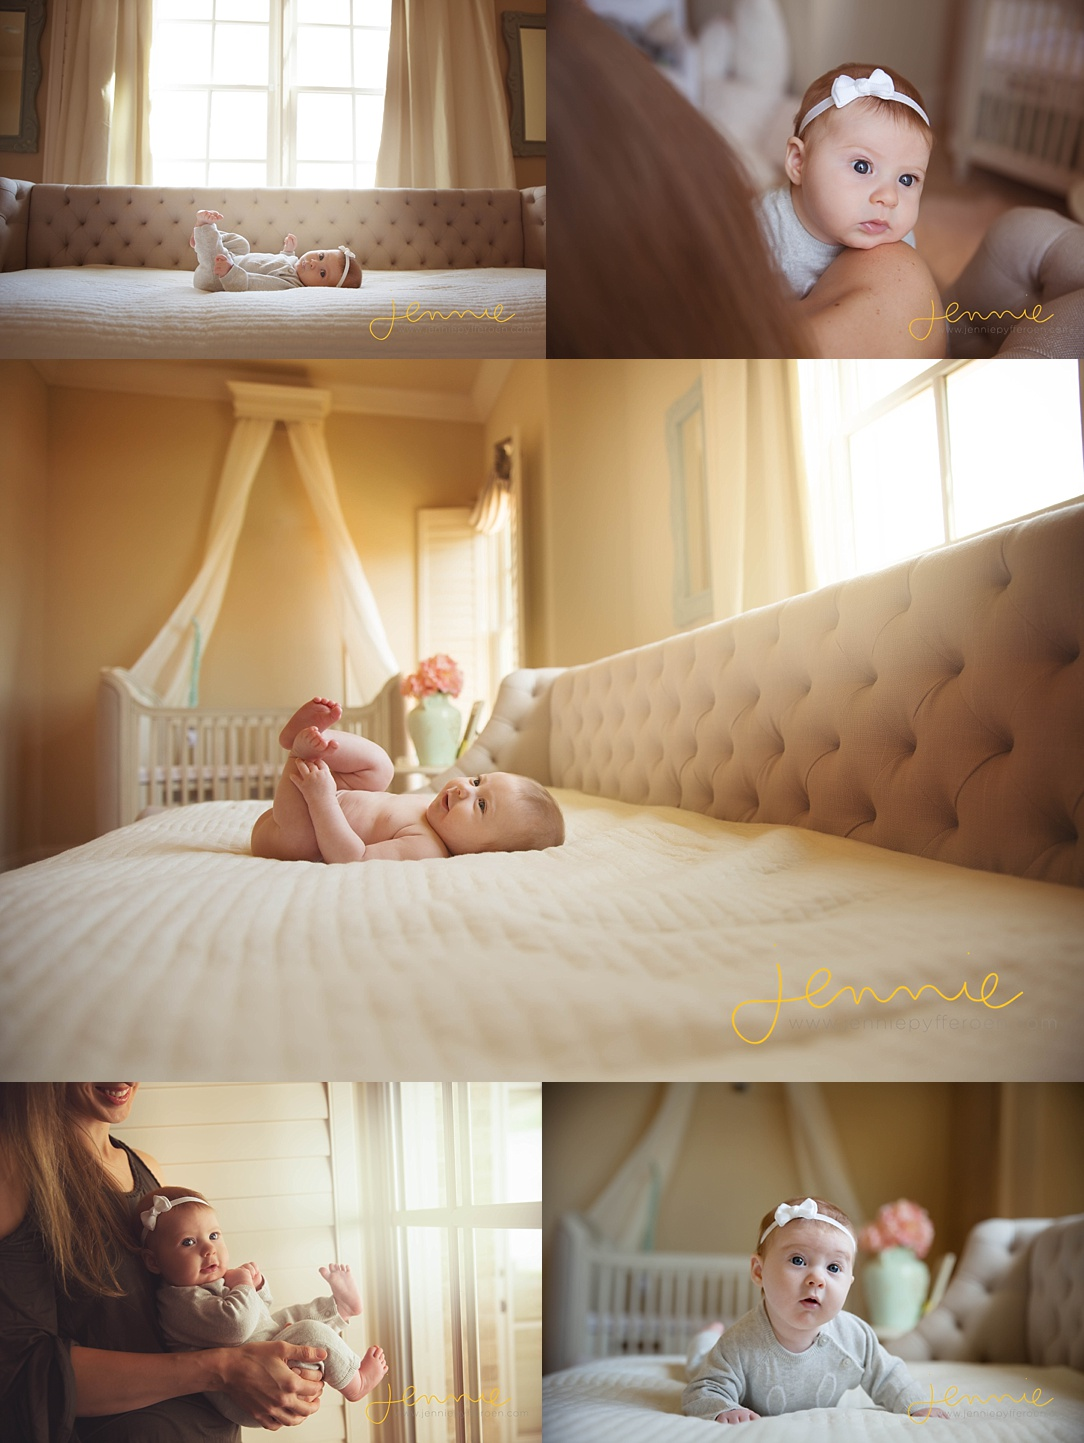 Nashville Baby Photographer Lifestyle 3 Months in home emotion candid